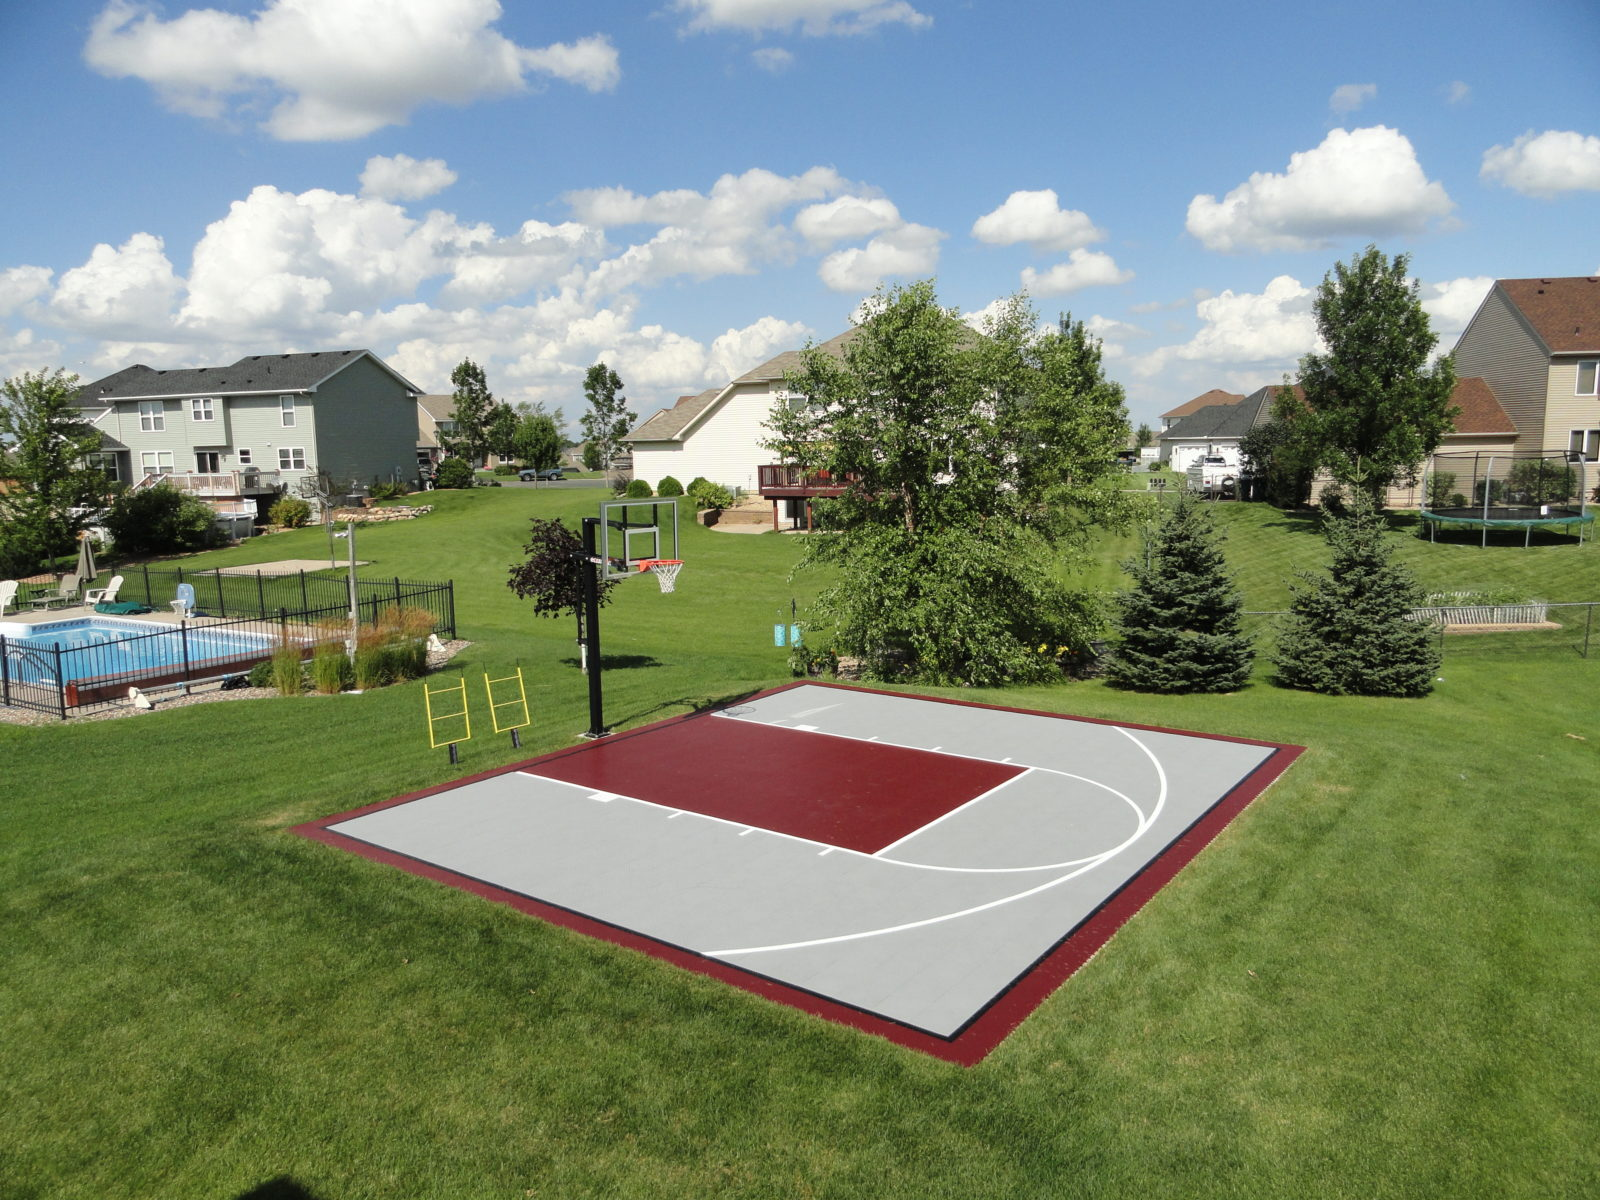 Outdoor Basketball Courts   Game Courts   Millz House ...